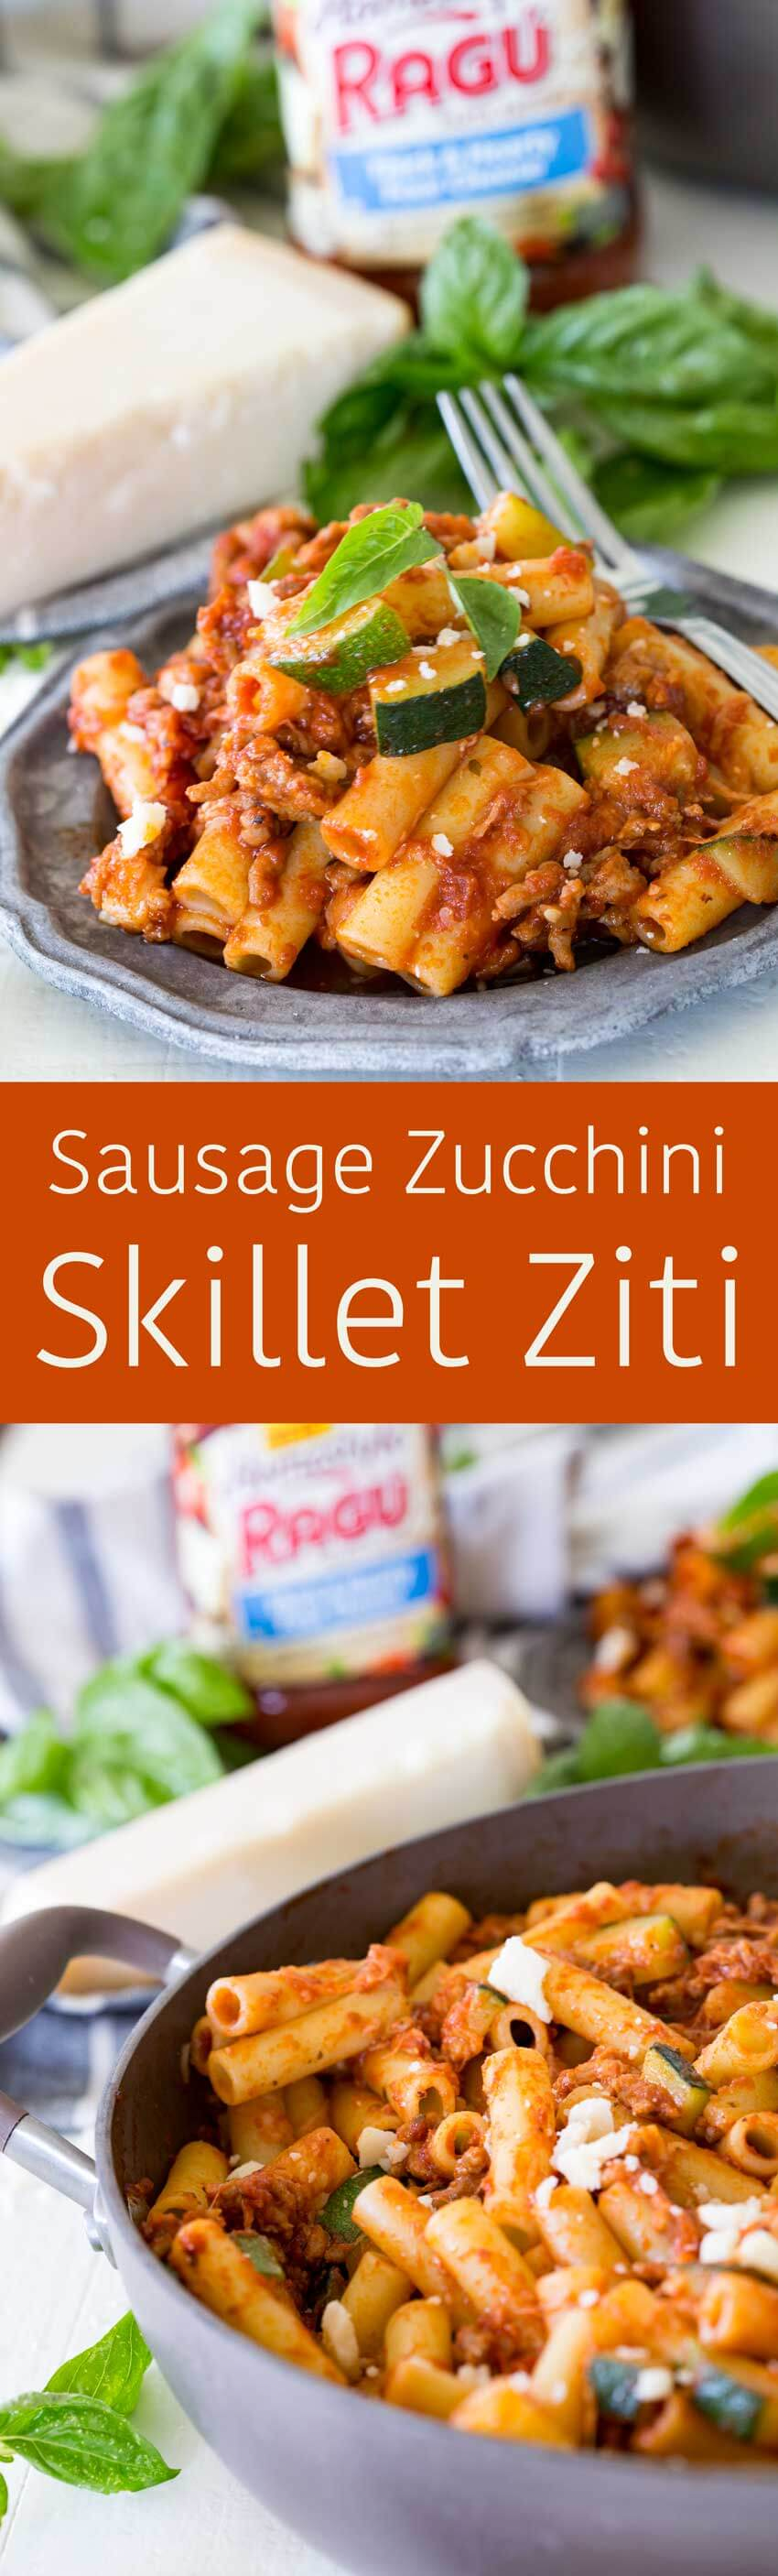 Sausage zucchini skillet pasta, the perfect weeknight meal, a great option for lunch or dinner